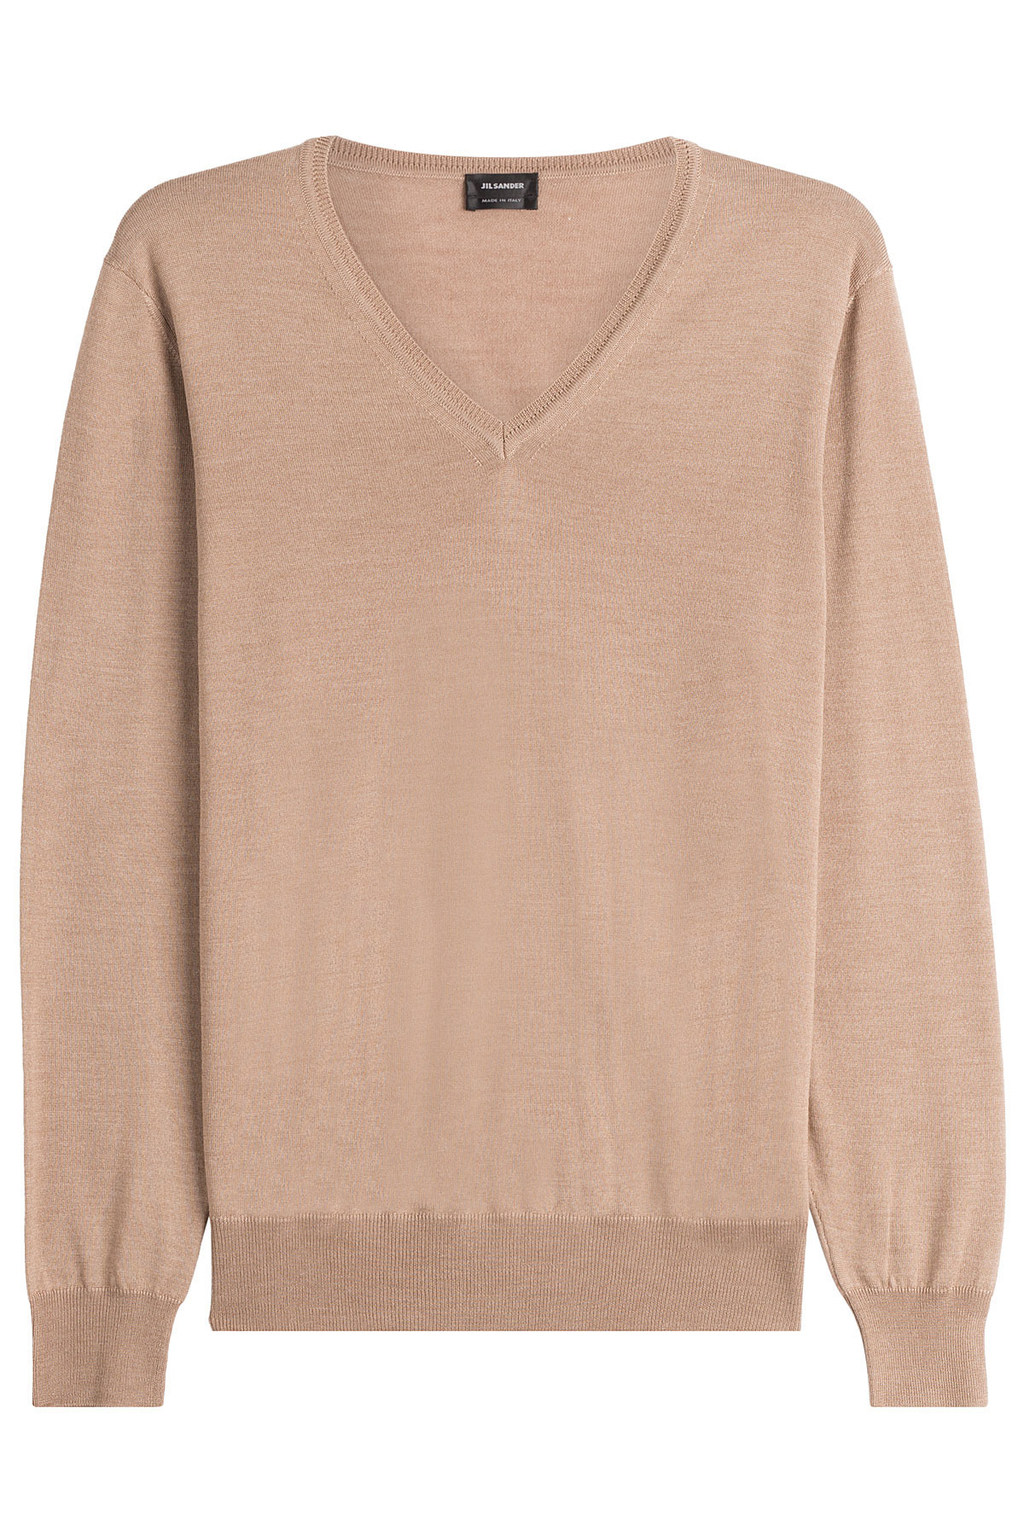 Pullover With Wool And Silk - neckline: v-neck; pattern: plain; style: standard; predominant colour: camel; occasions: casual, work, creative work; length: standard; fibres: wool - mix; fit: standard fit; sleeve length: long sleeve; sleeve style: standard; texture group: knits/crochet; pattern type: knitted - fine stitch; wardrobe: basic; season: a/w 2016